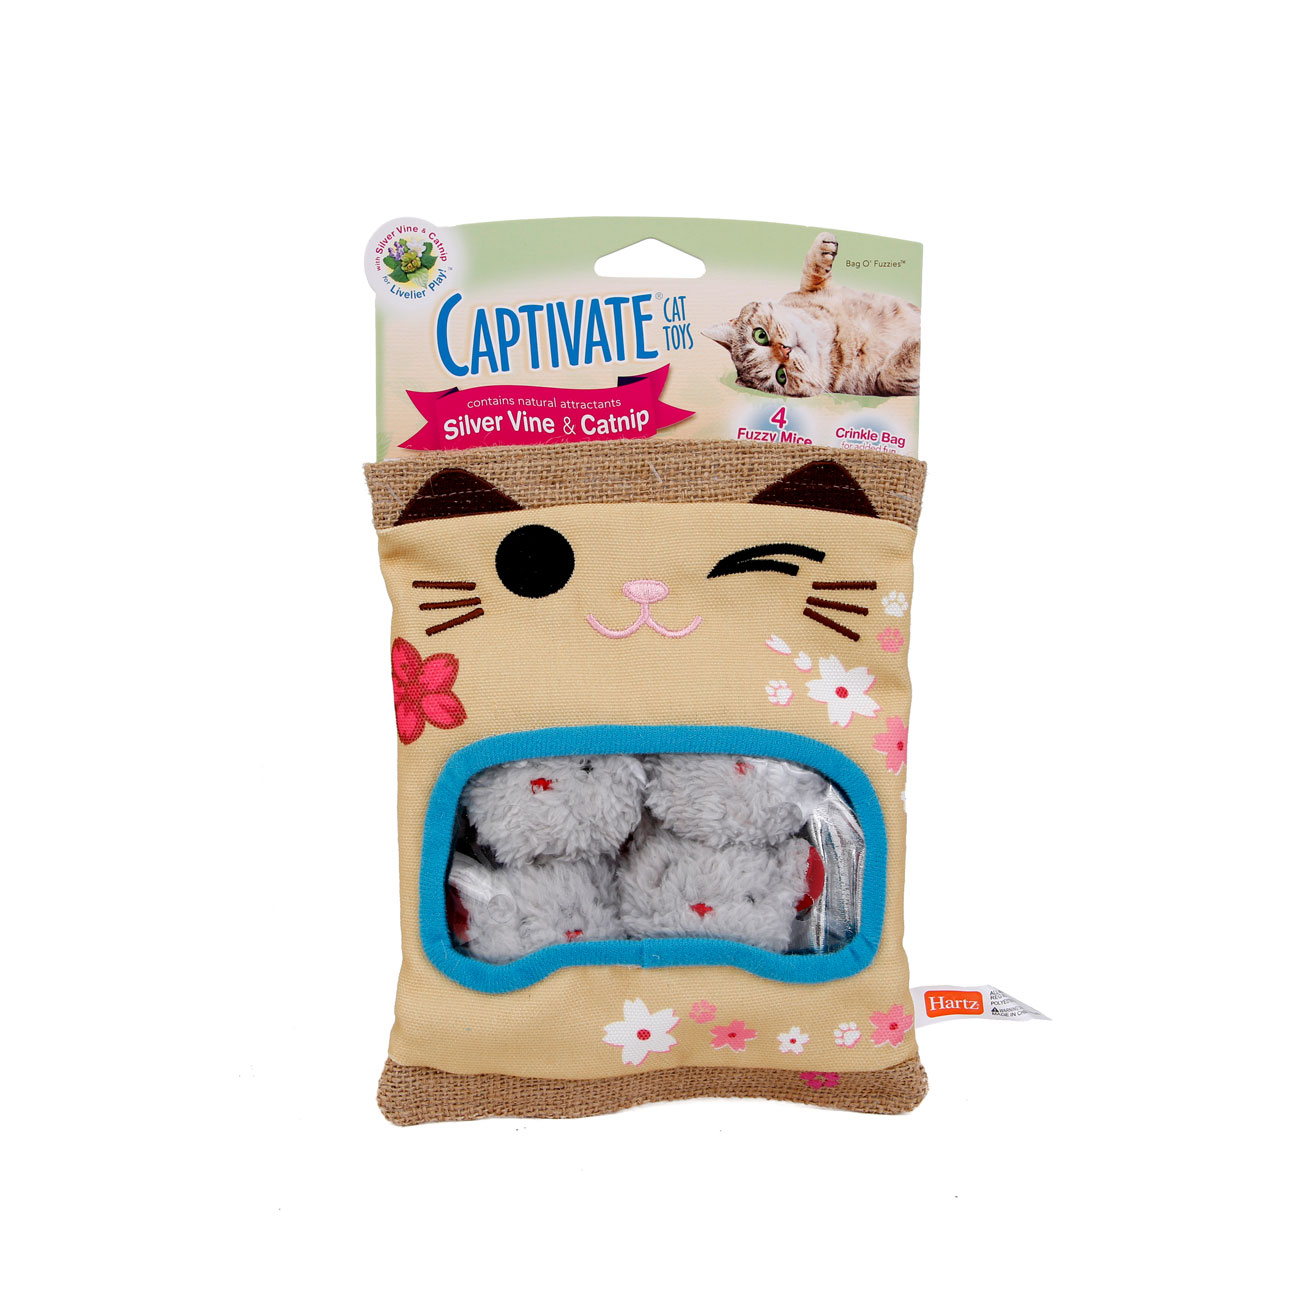 Captivate cat toys with silver vine and catnip. Bag O Fuzzies cat toy. Hartz SKU#3270011261